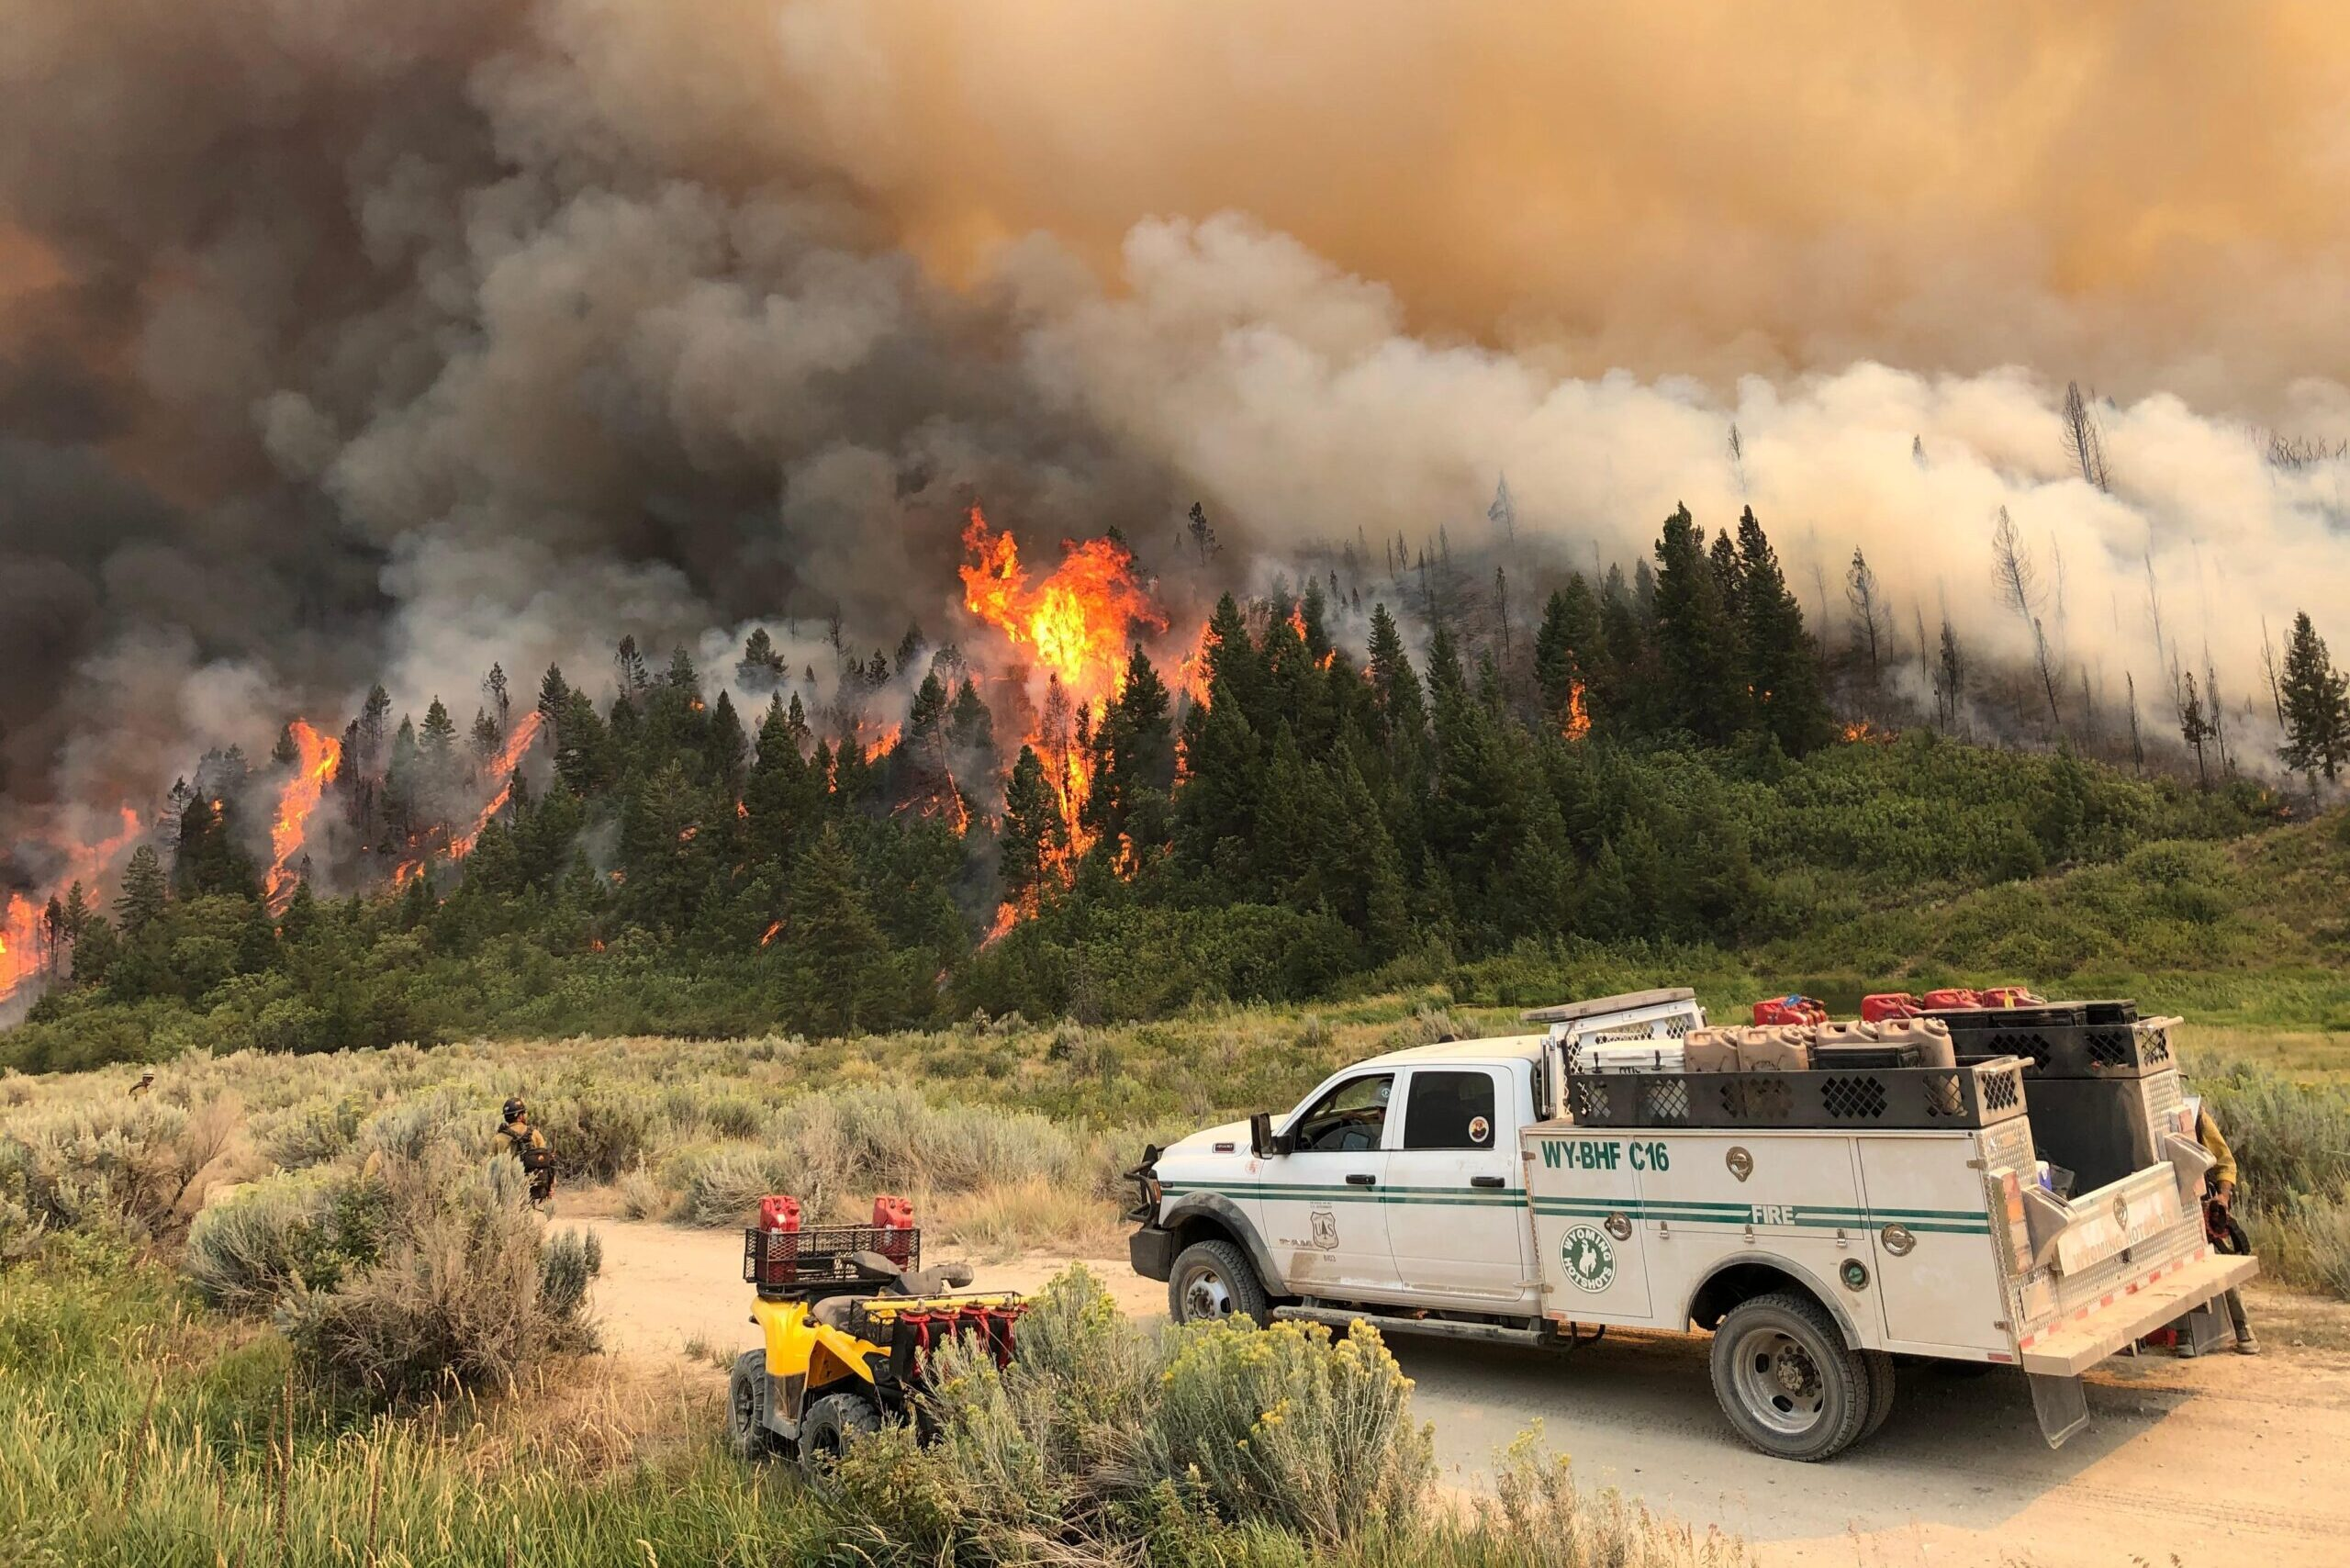 A stand of trees catches fire on Aug. 7, 2020, as part of the Pine Gulch Fire north of Grand Junction, Colo.